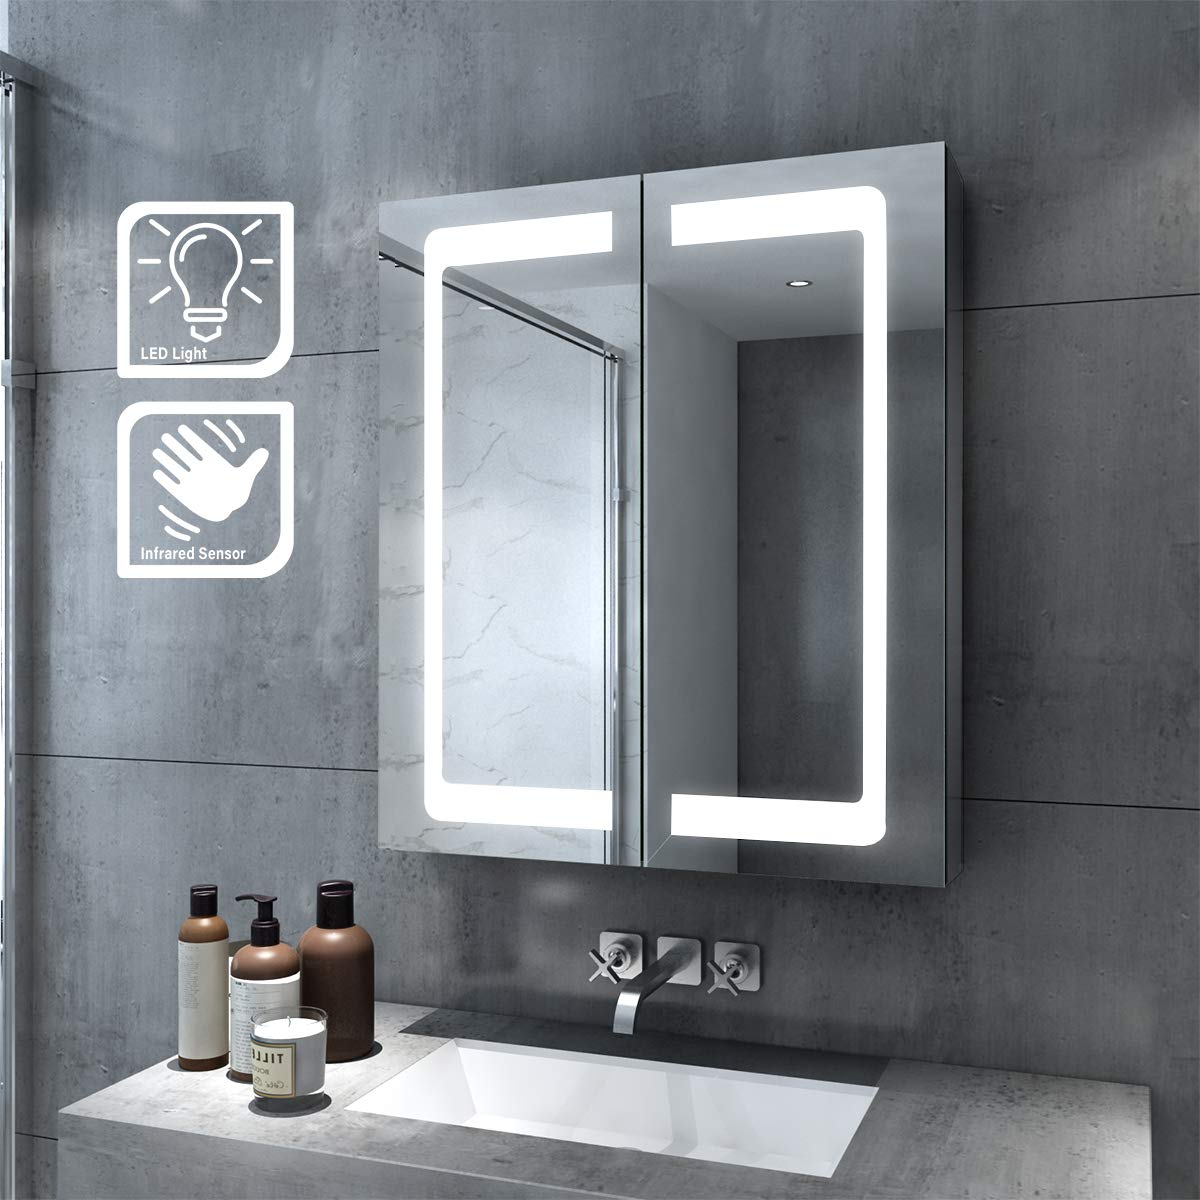 Elegant Bathroom Mirror Cabinet With Lights 60cm Led Mirror With